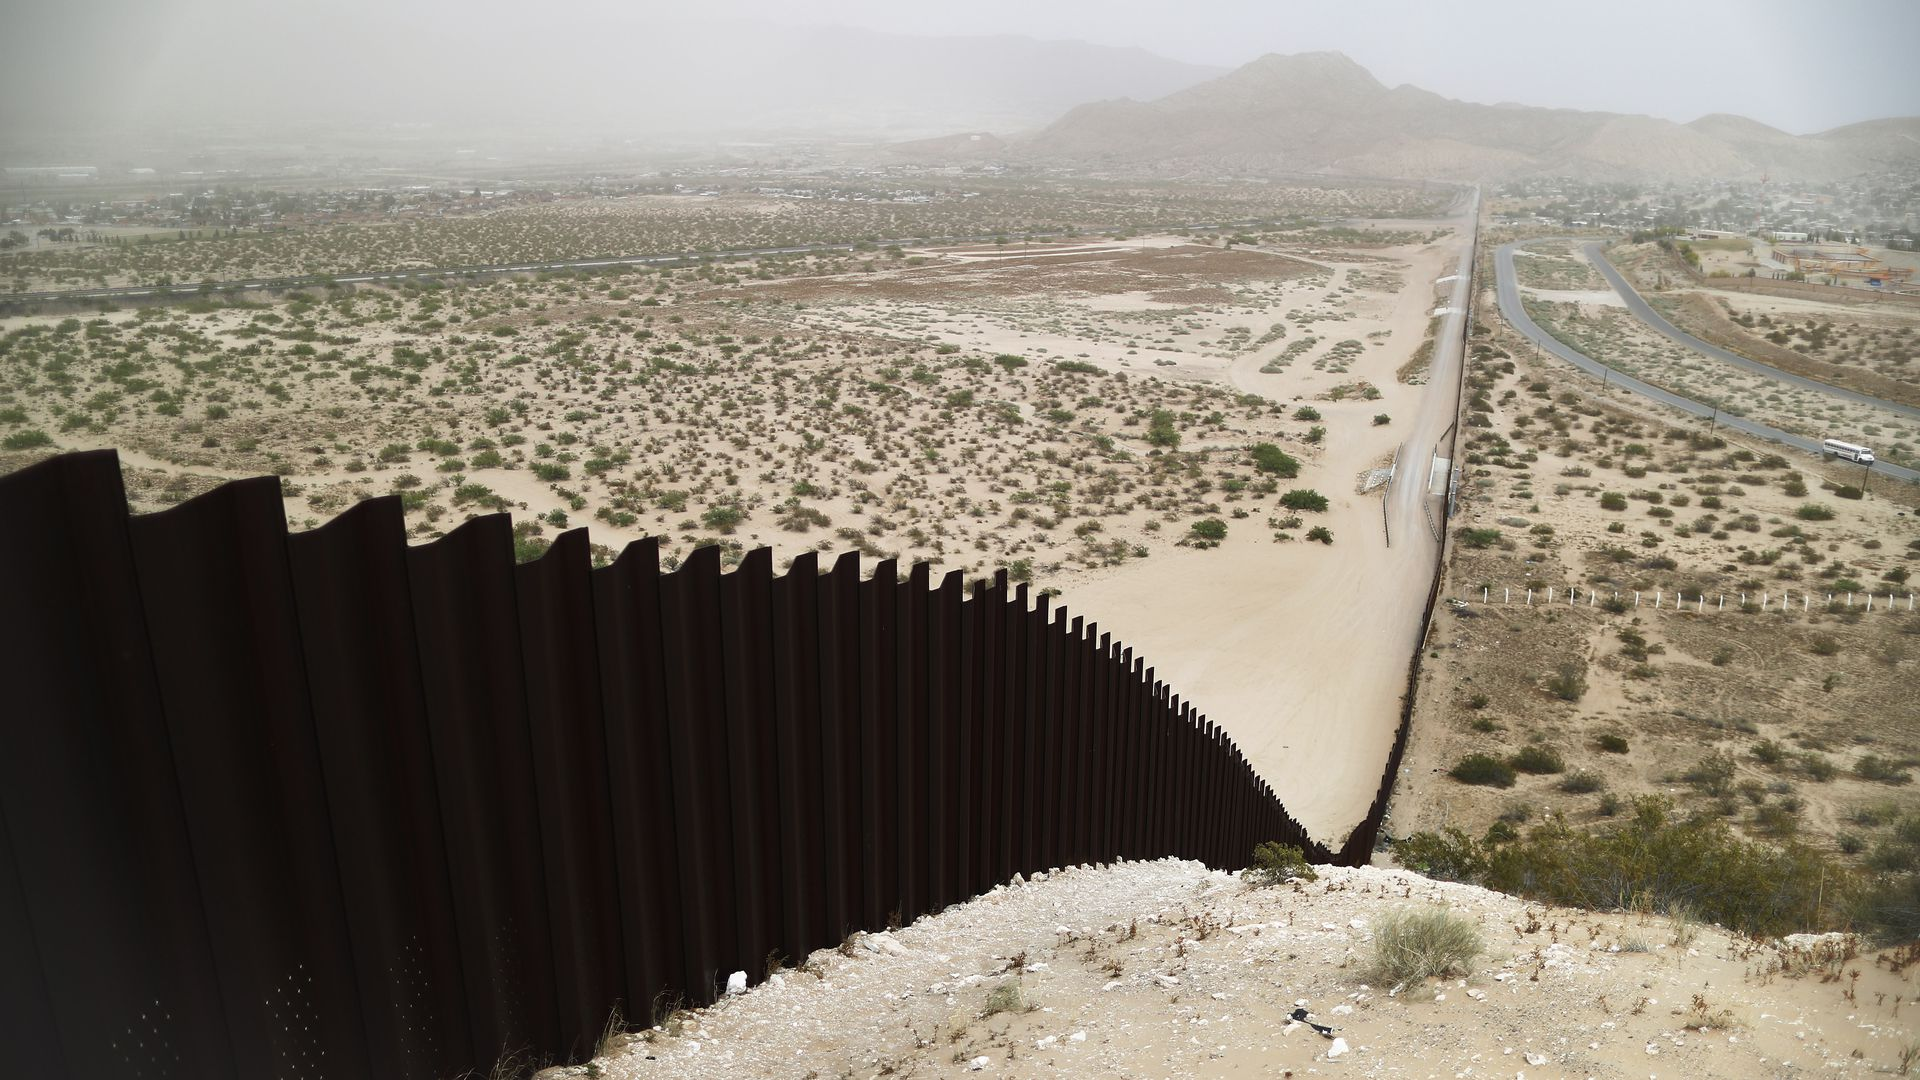 Border wall along the U.S. Mexico border